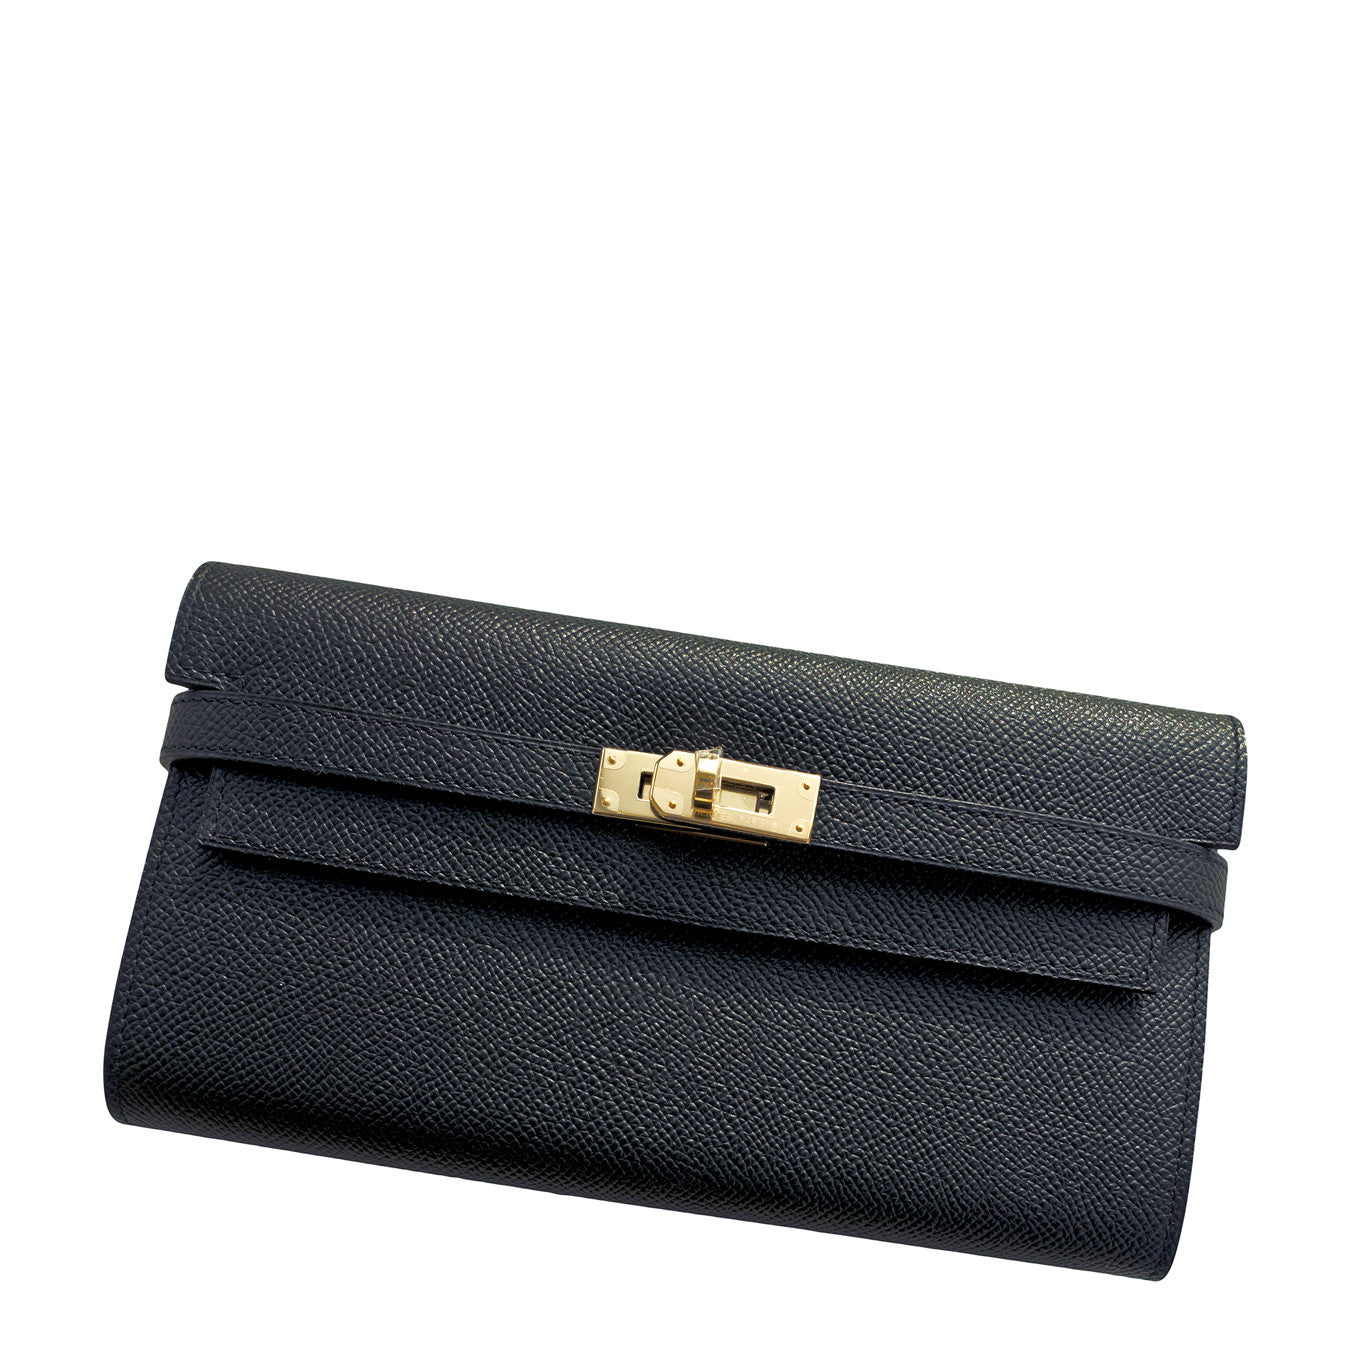 ... coupon hermes black epsom permabrass kelly long wallet clutch super  rare a2bb4 ea752 ... e6f664c9148ab